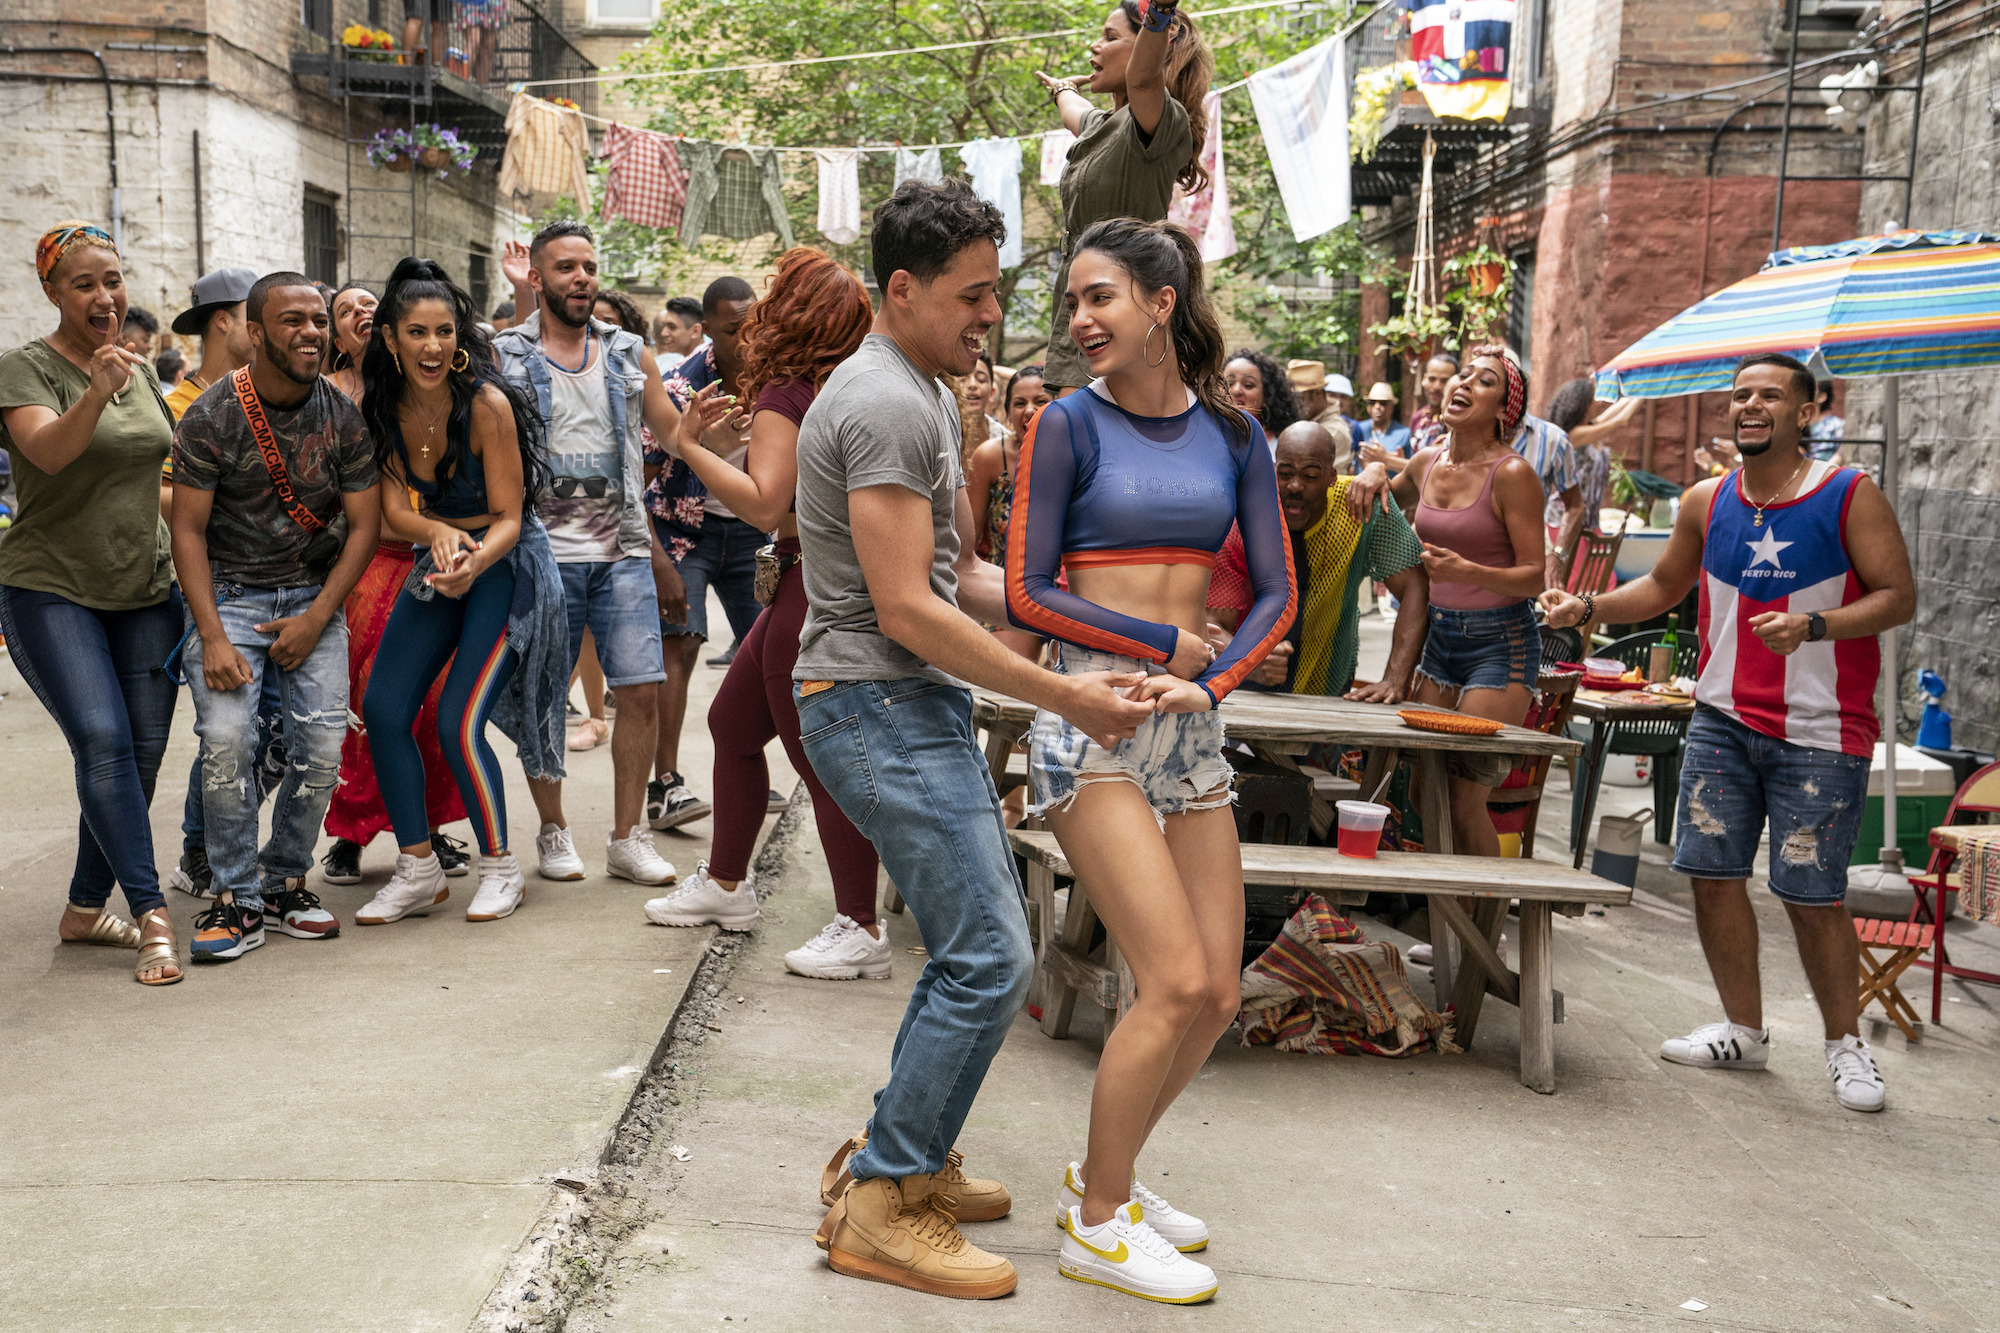 'In the Heights' Movie Indefinitely Postponed Due to COVID-19 Concerns